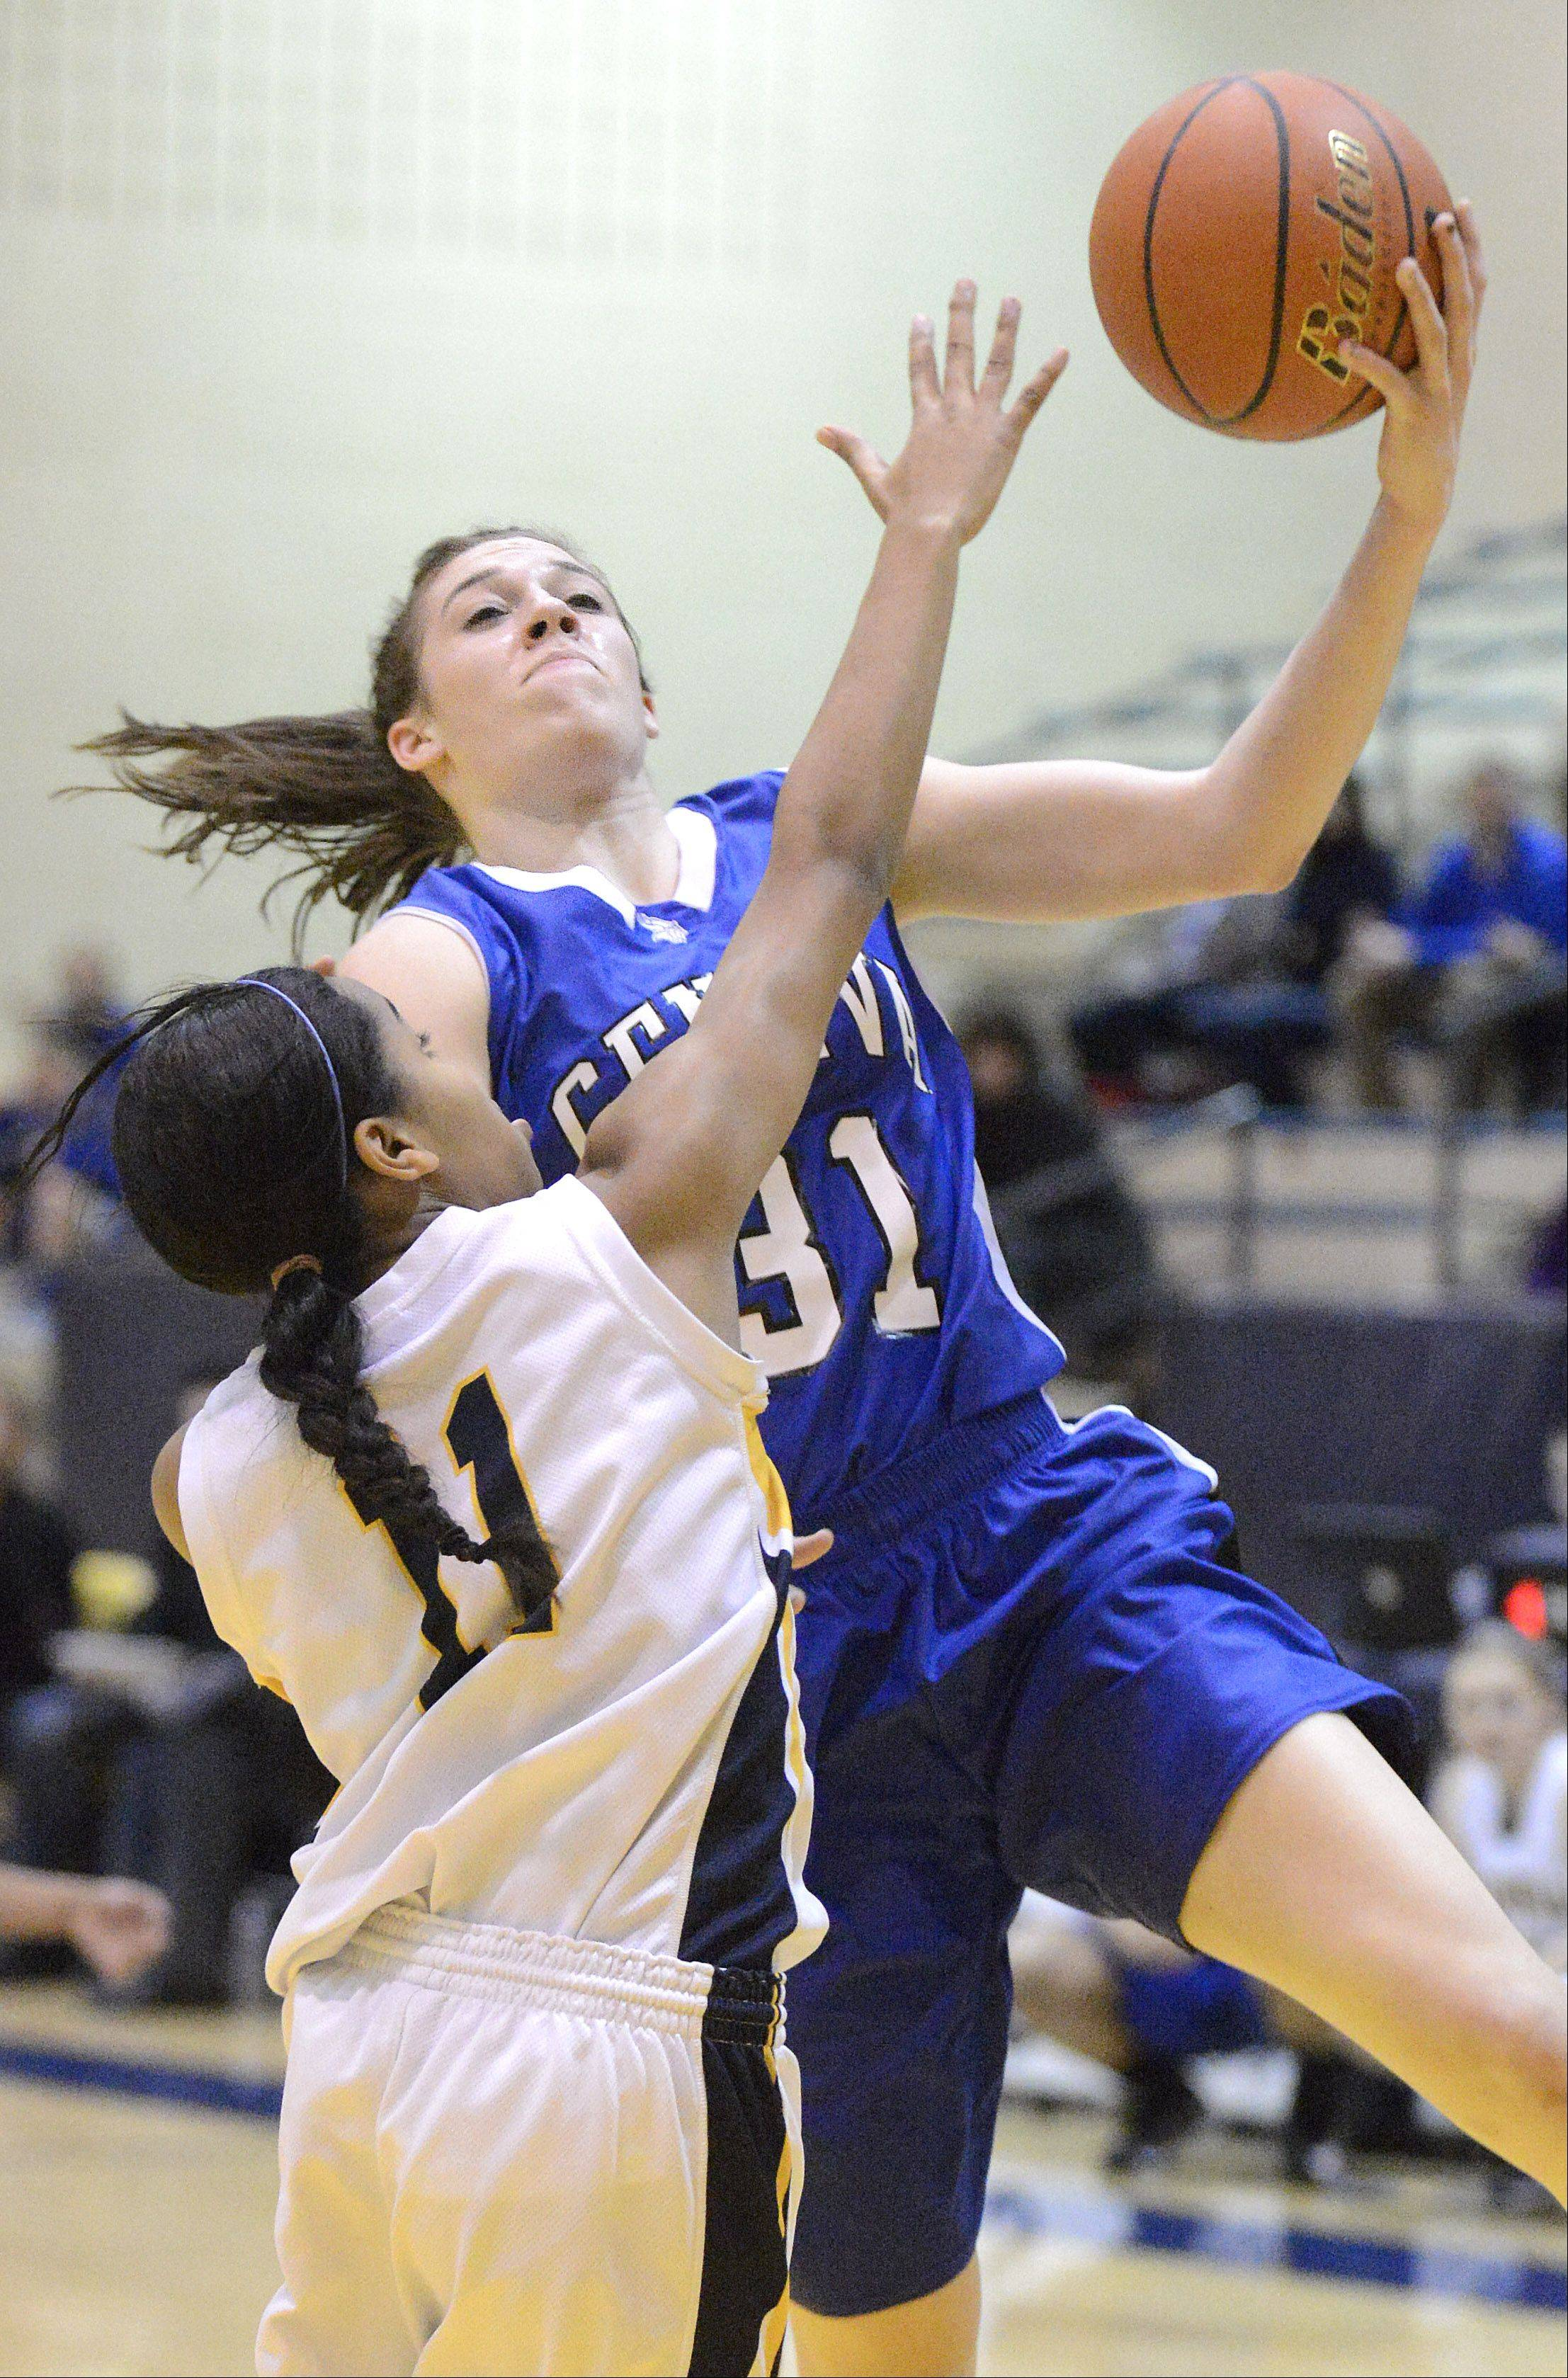 Laura Stoecker/lstoecker@dailyherald.comNeuqua Valley's Kai Moon attempts to block a shot by Geneva's Sami Pawlak in the first quarter of the Upstate Eight championship on Friday, February 8.